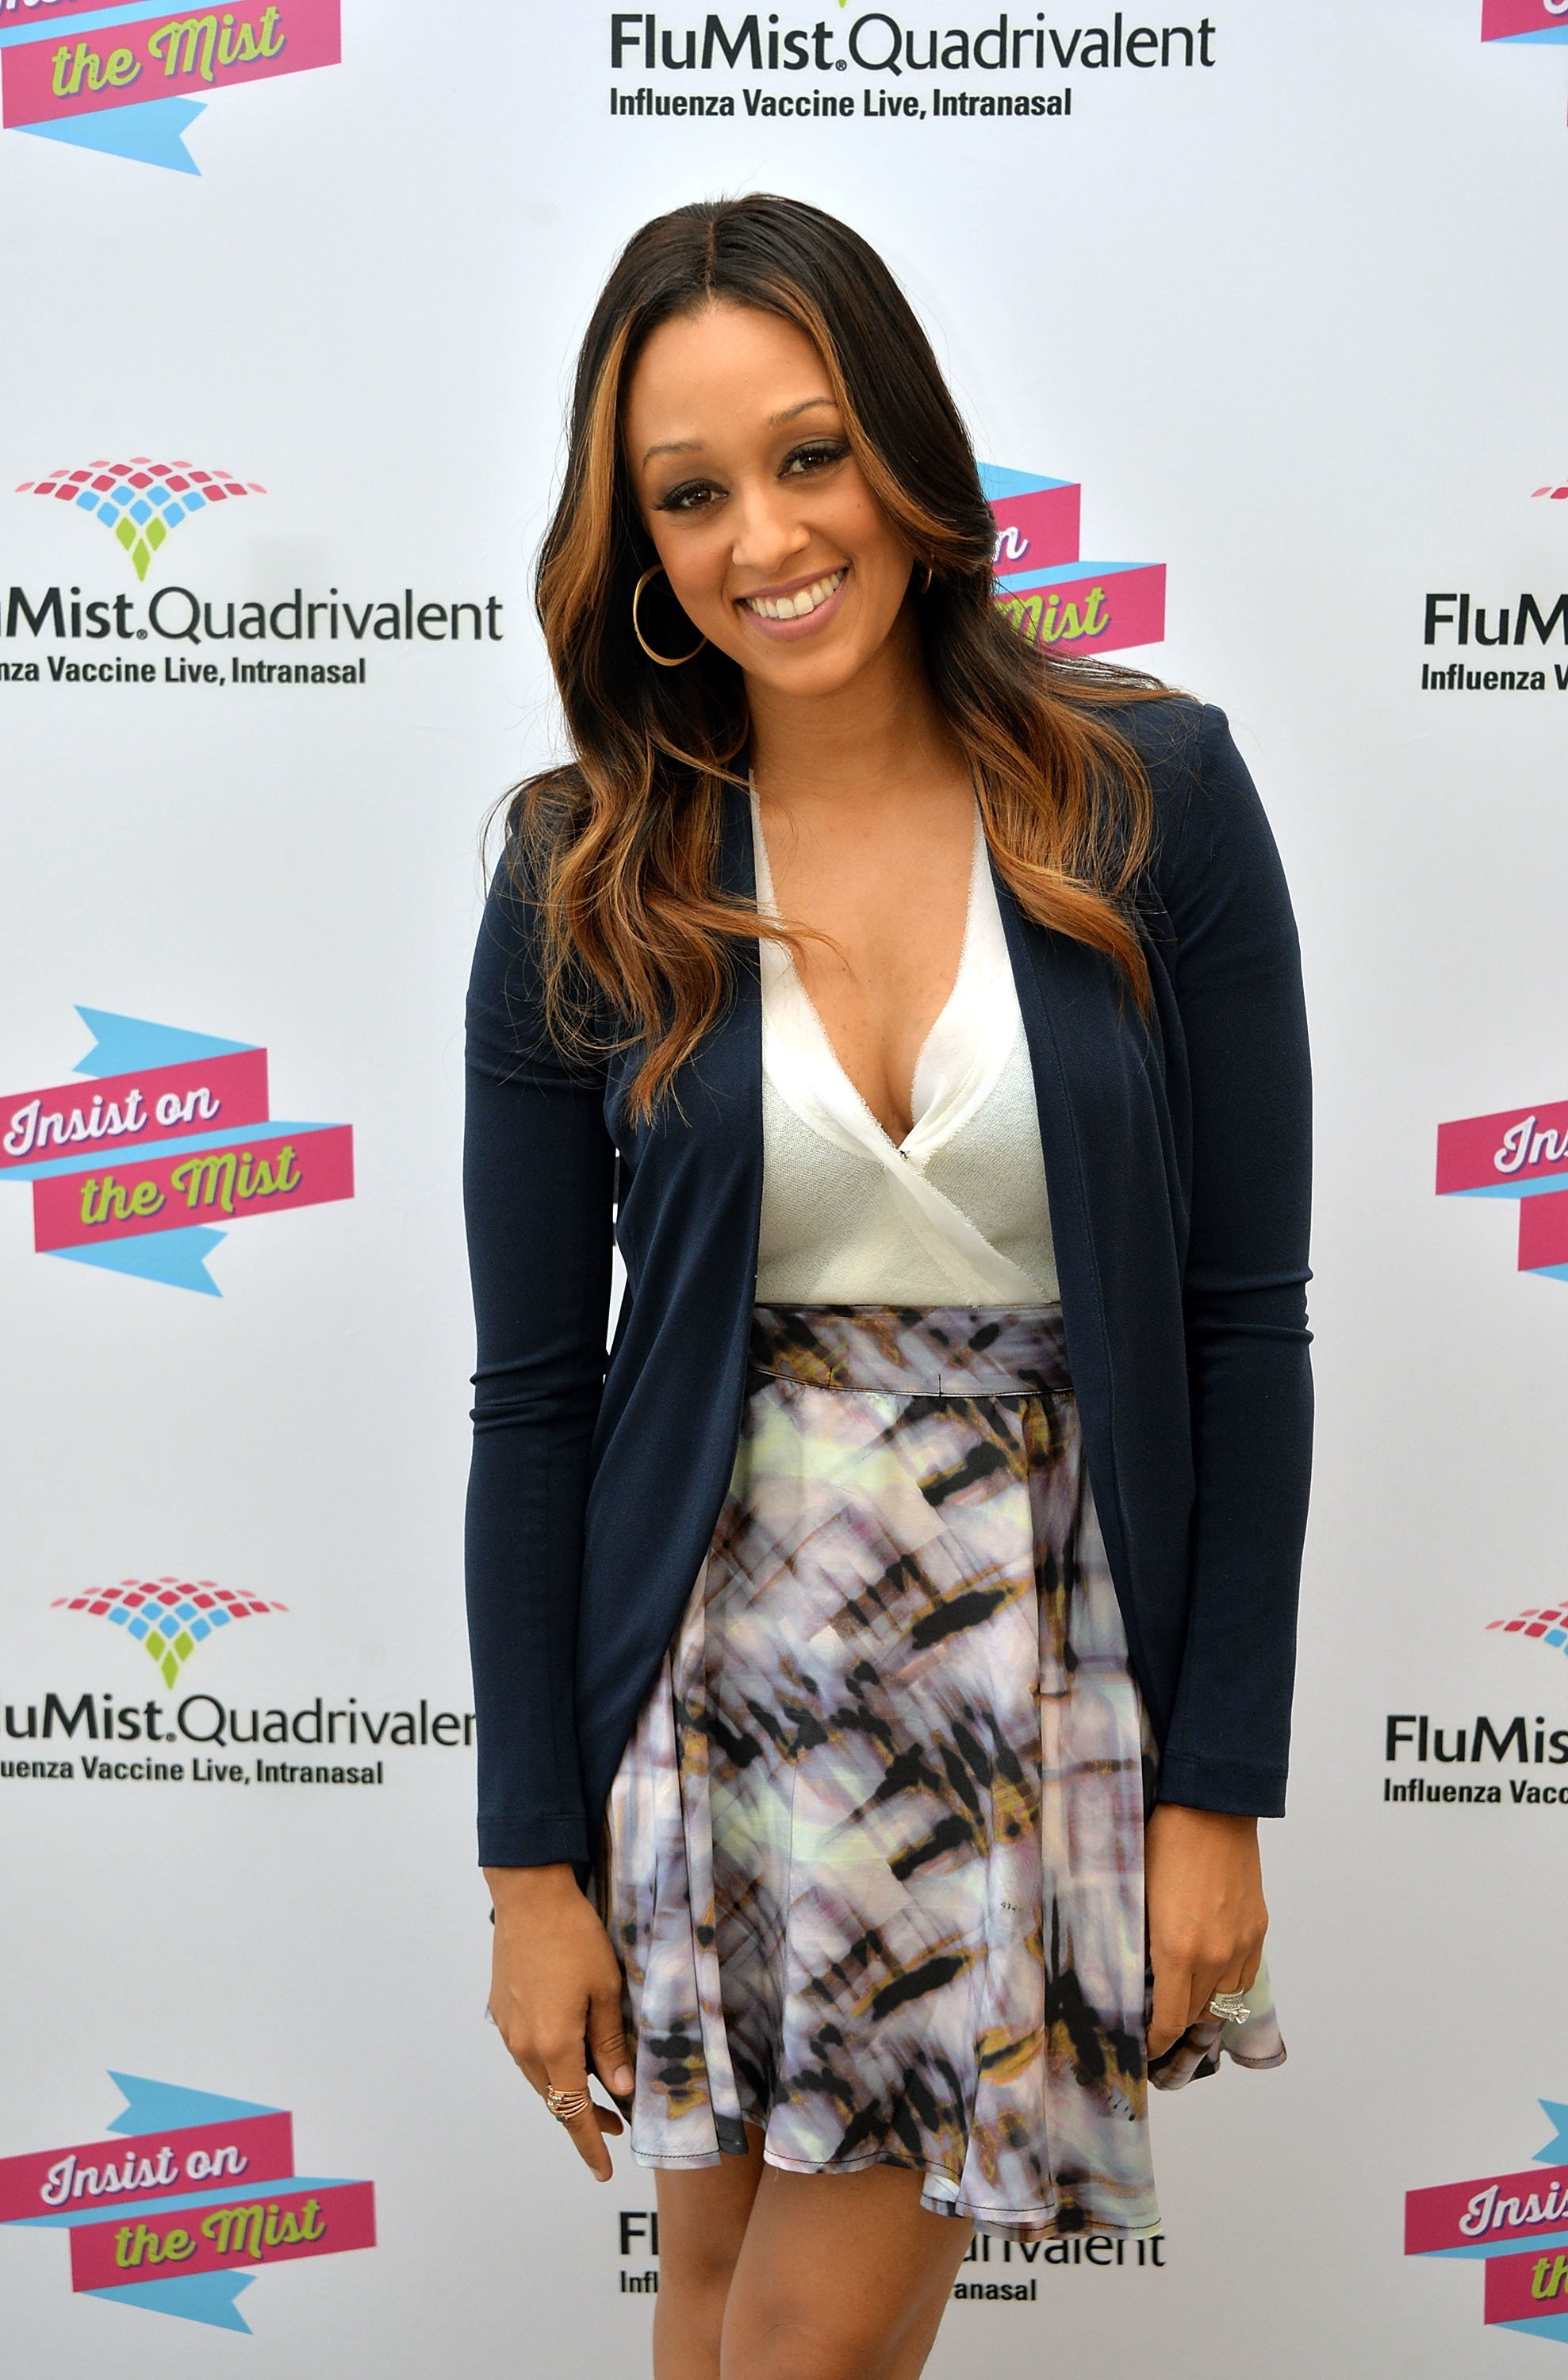 "Actress and mom Tia Mowry at the launch of ""I Insist!""- a FluMist Quadrivalent (Influenza Vaccine Live, Intranasal) video in which she starred on September 23, 2013 